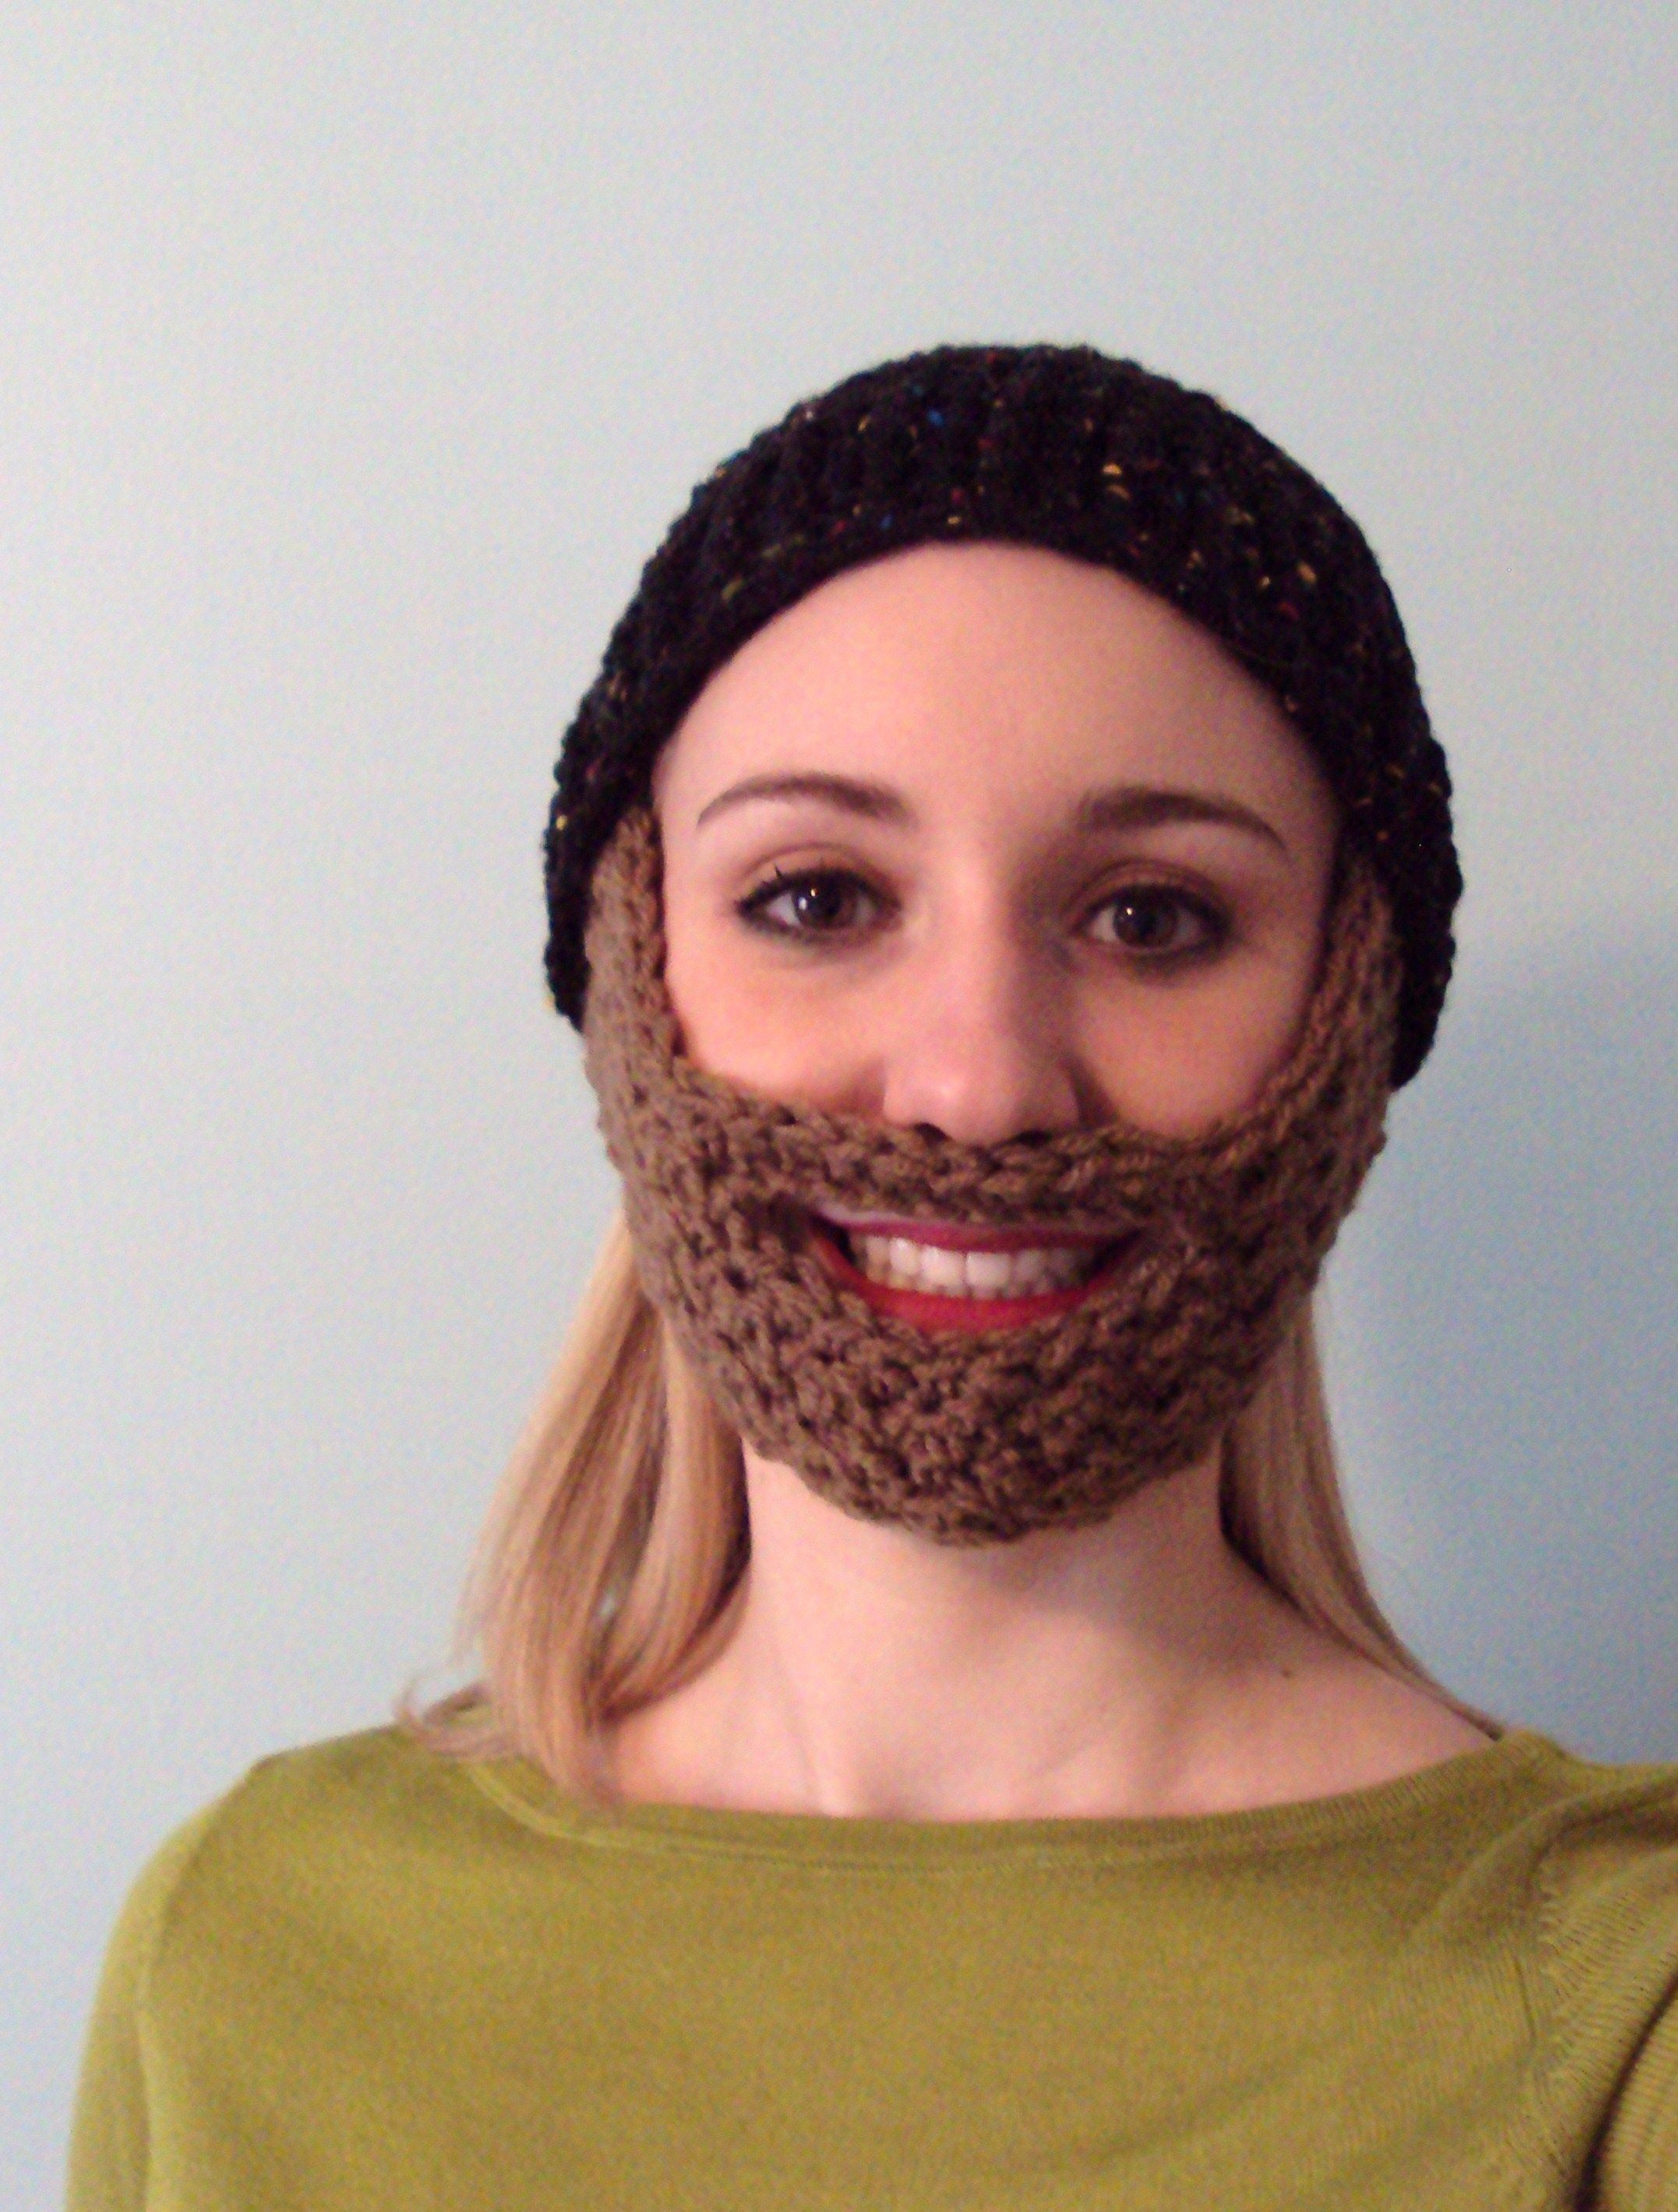 free pattern from http://www.jjcrochet.com/blog/crochet-beard-hat ...